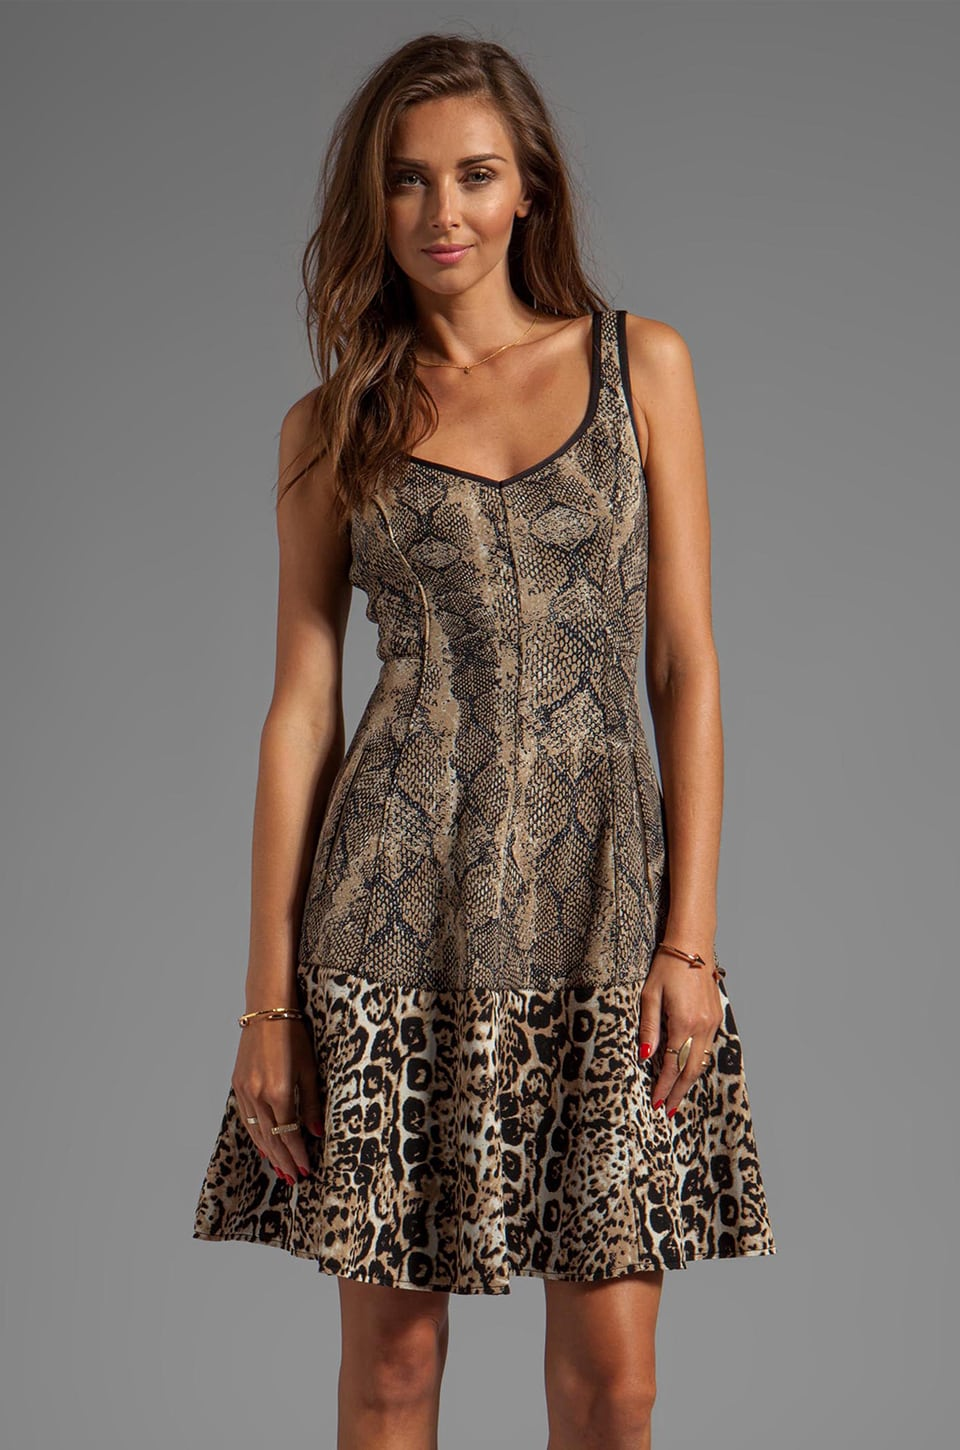 Tracy Reese Printed Neoprene Combo Frock Dress in Python/Cheetah